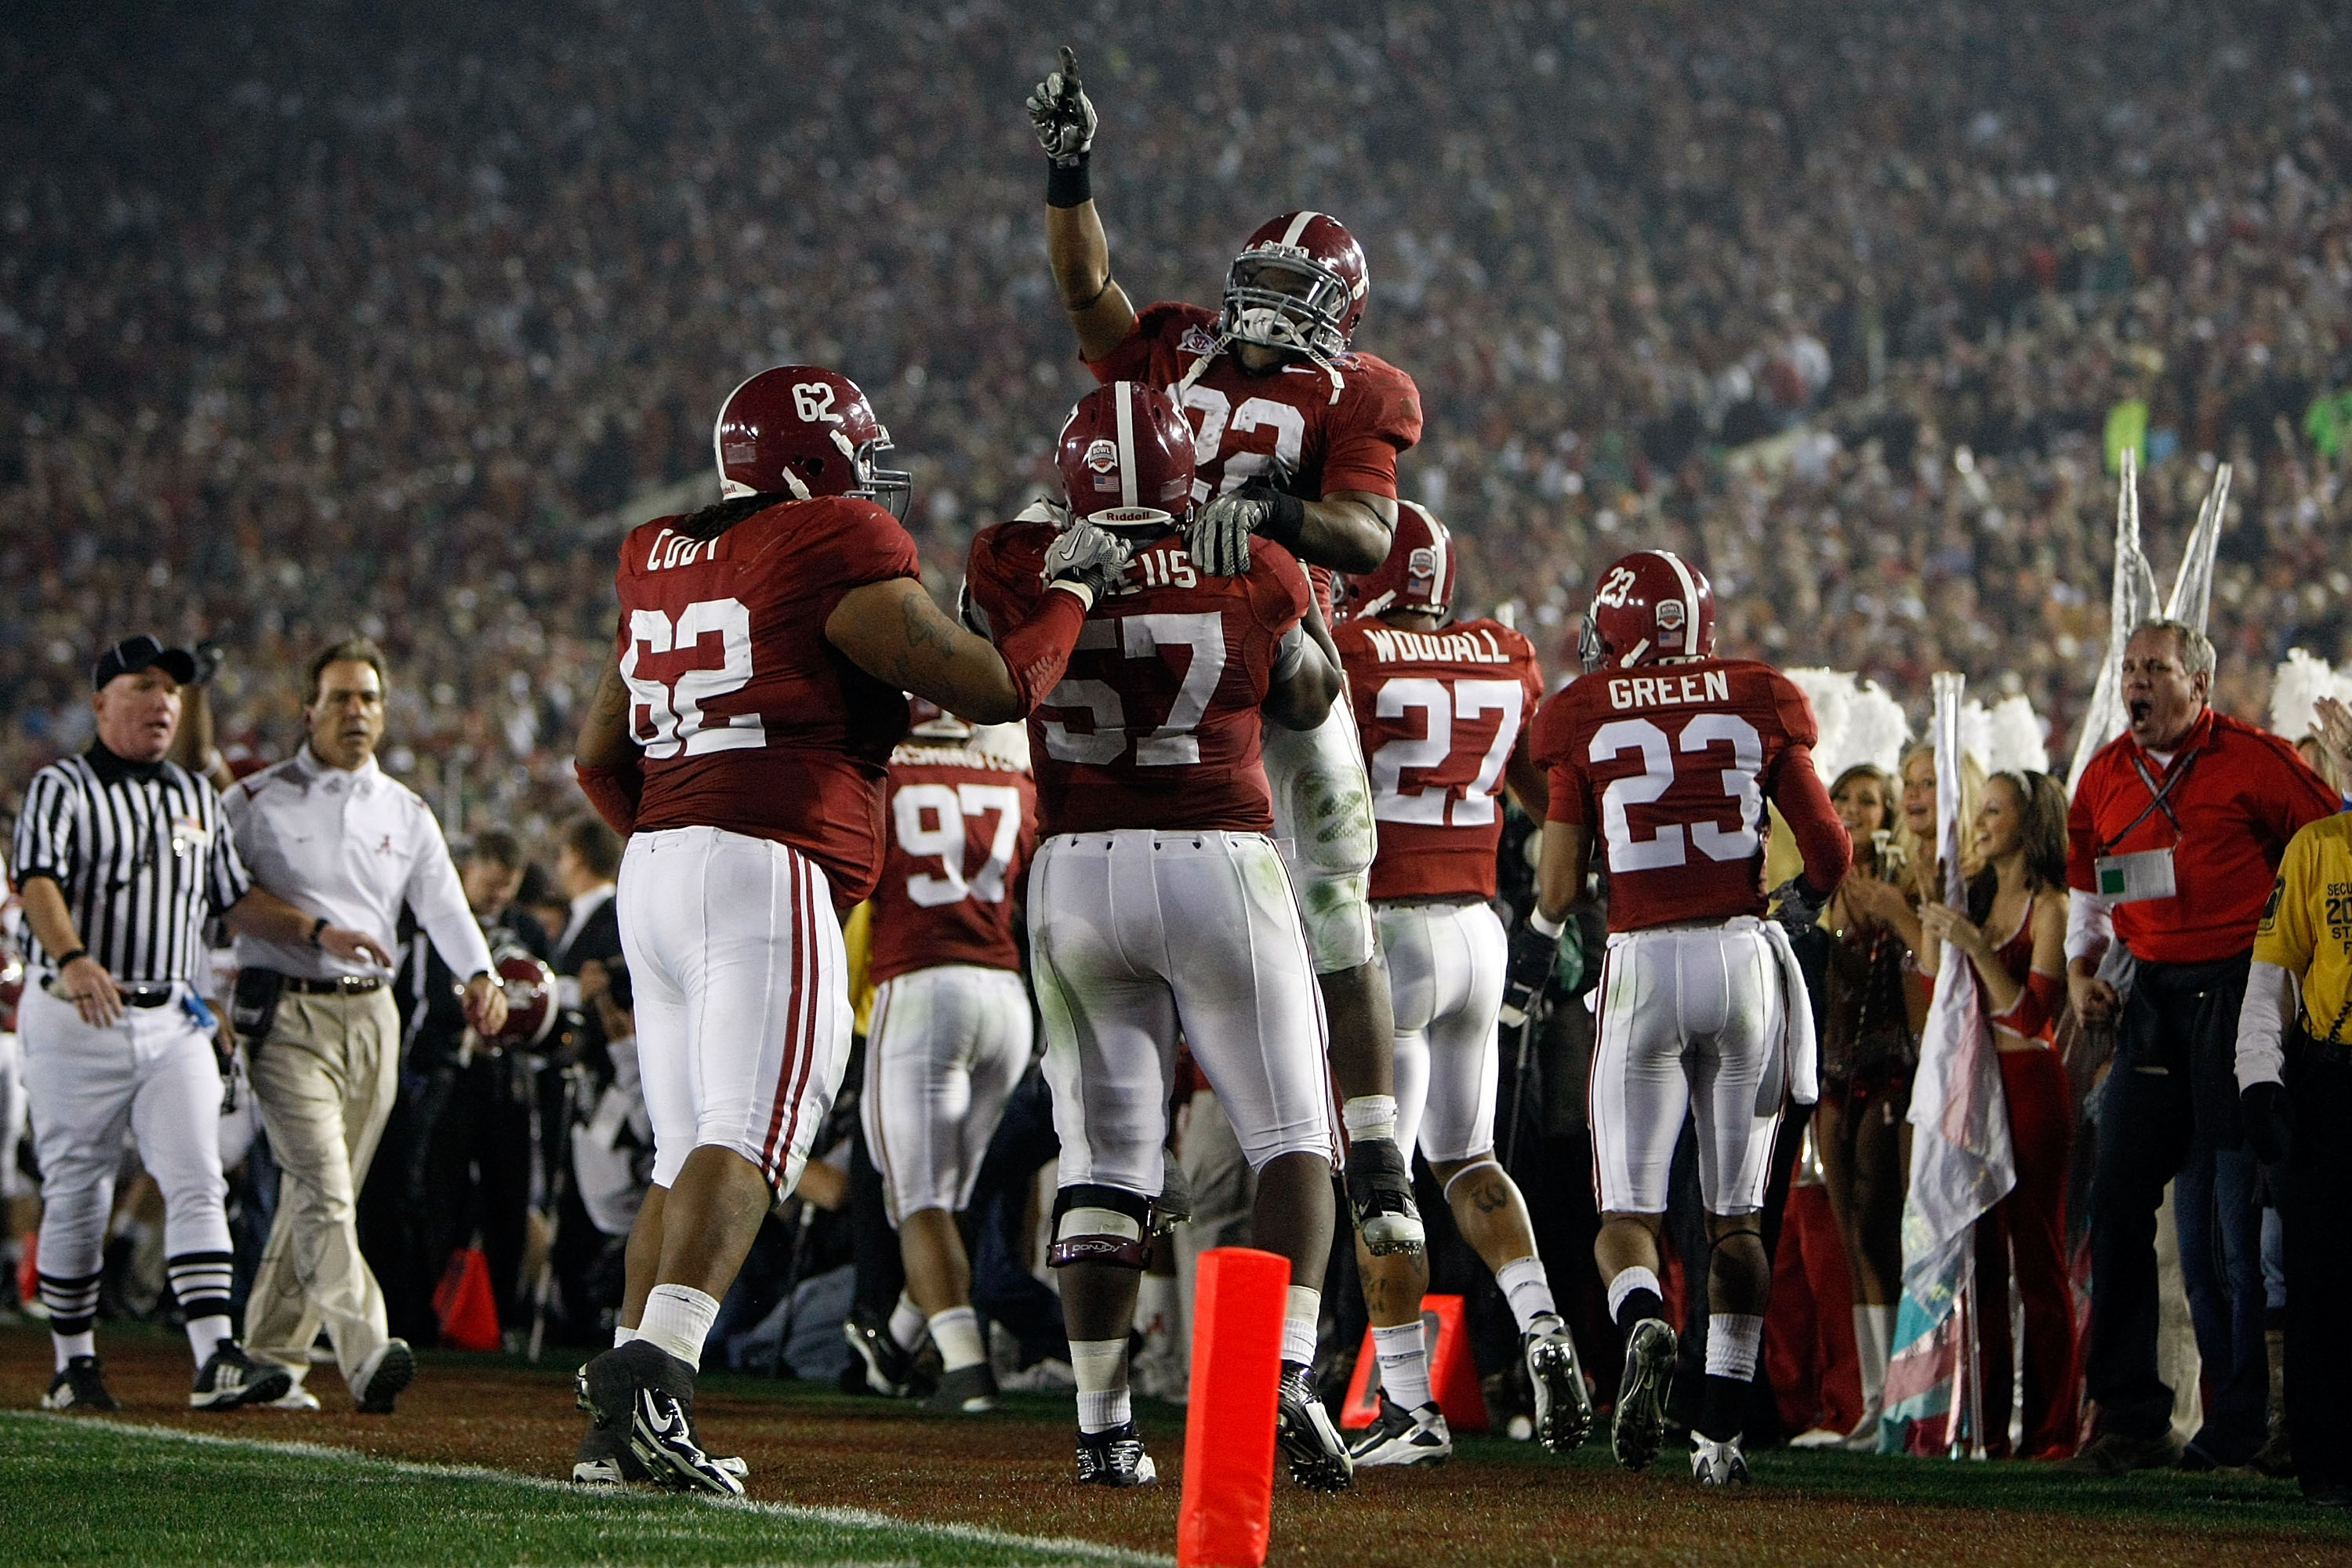 PASADENA, CA - JANUARY 07:  Running back Mark Ingram #22 jumps on lineman Marcell Dareus #57 of the Alabama Crimson Tide as they celebrate with teammates after Dareus' 28-yard interception return for a touchdown against the Texas Longhorns during the seco